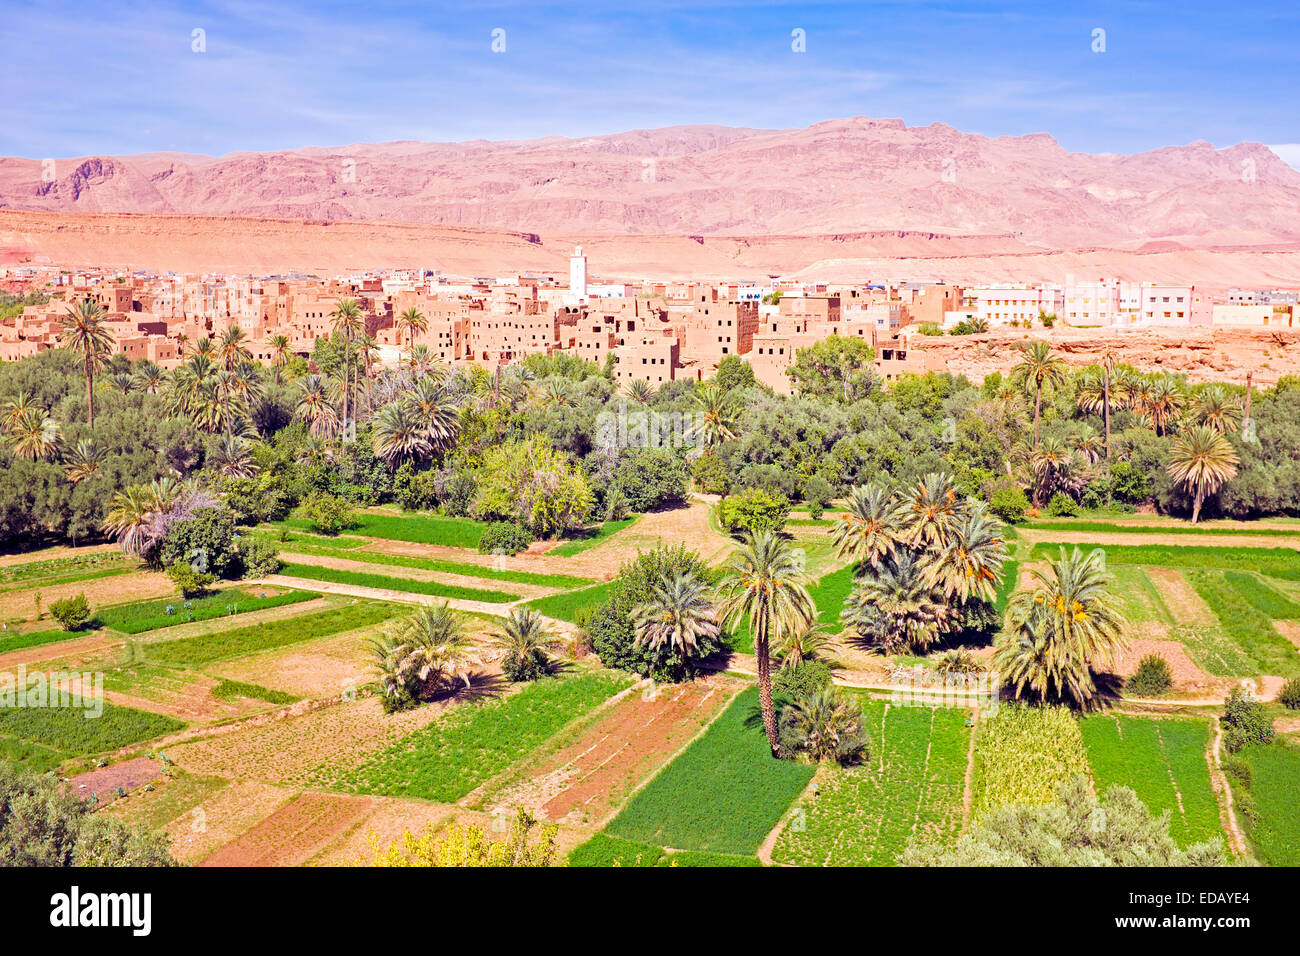 Oasis in the dade valley in Morocco Africa - Stock Image